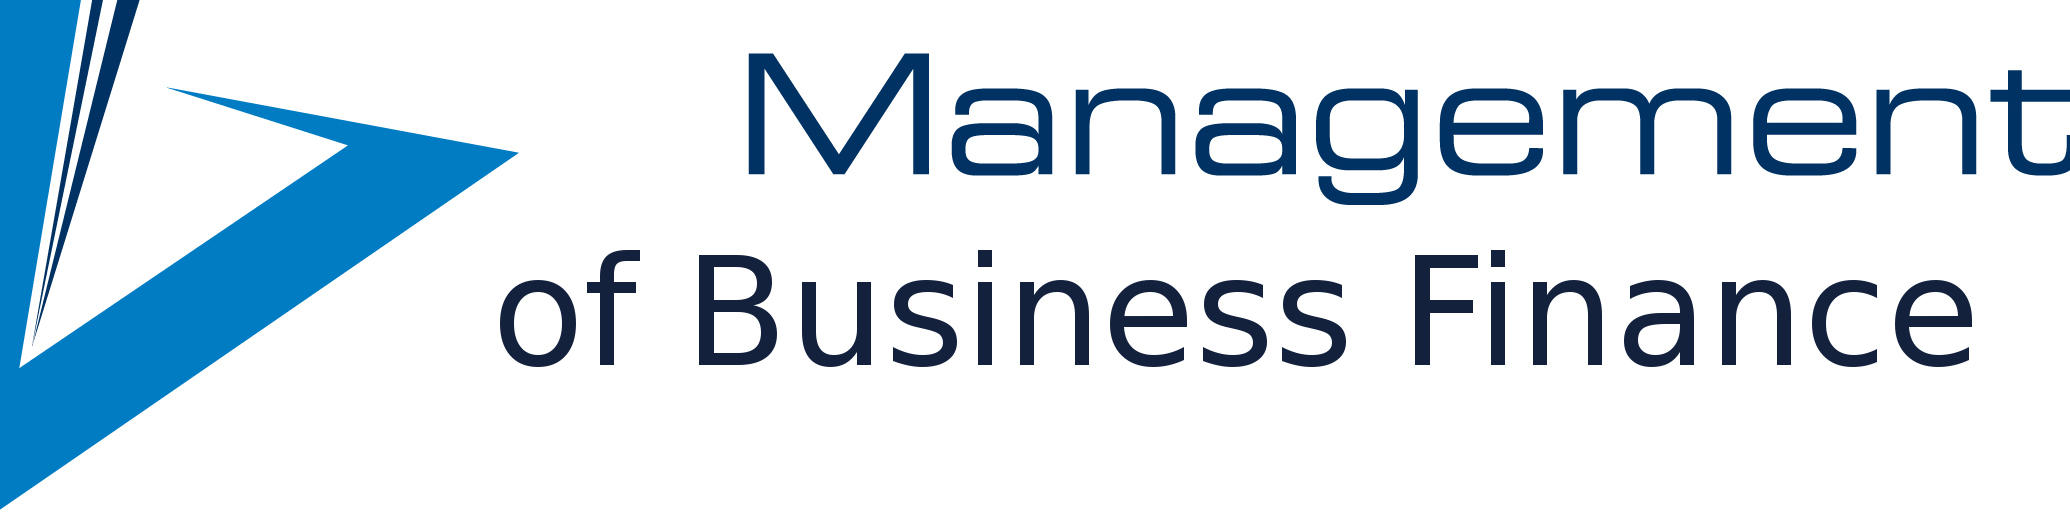 Management of Business Finance (MBF)